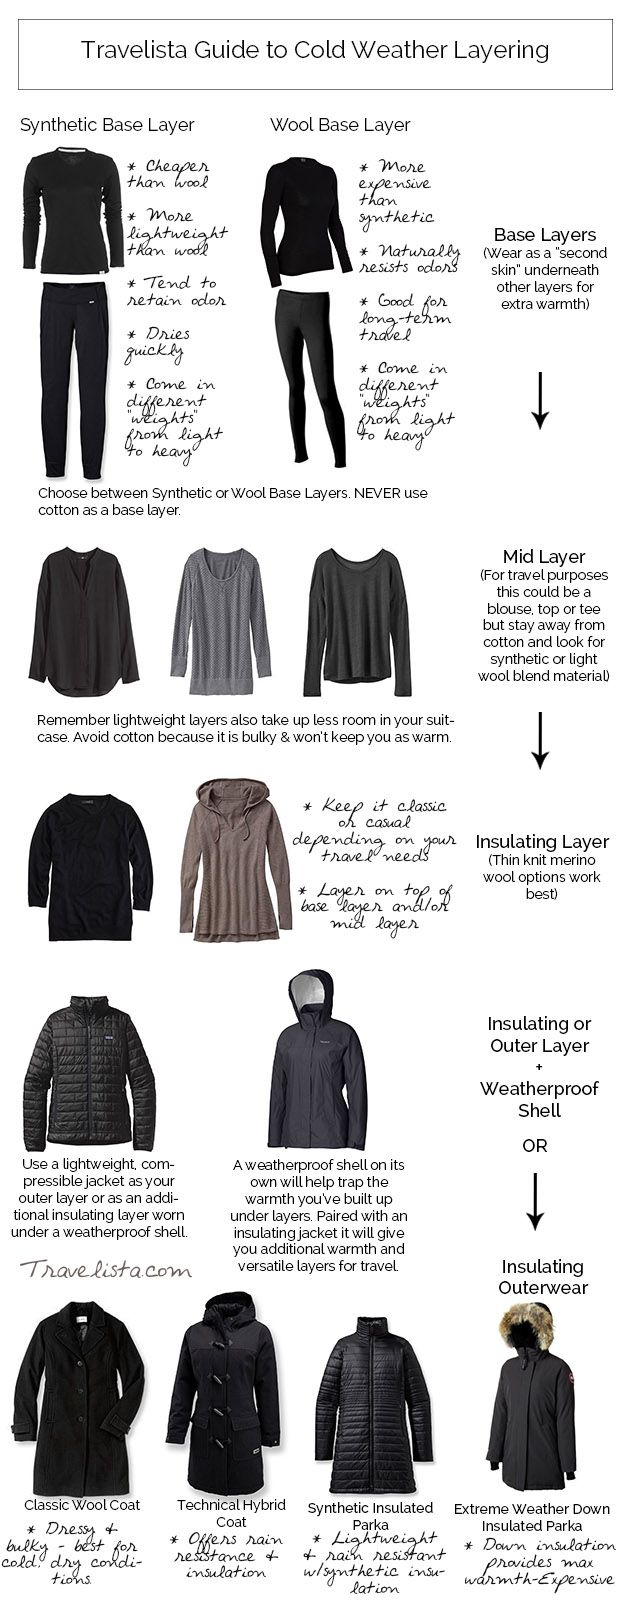 How to pack for cold weather...layers people! A little late now that we're in spring but there's always next time!